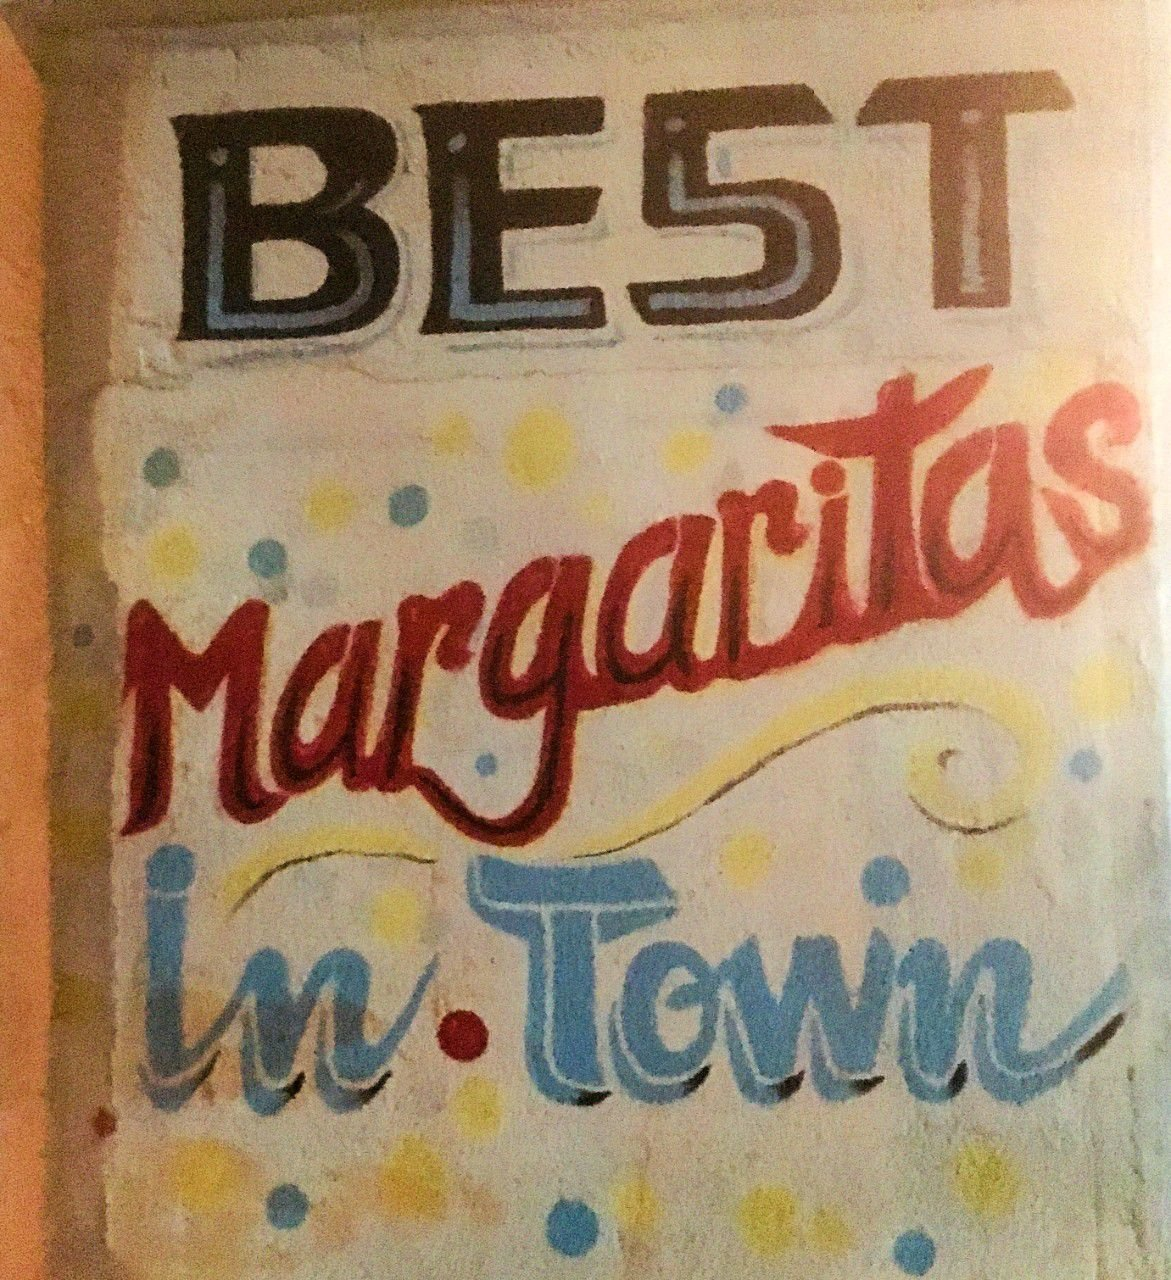 best margaritas sign villa sombrero jesus sanchez (1).jpg